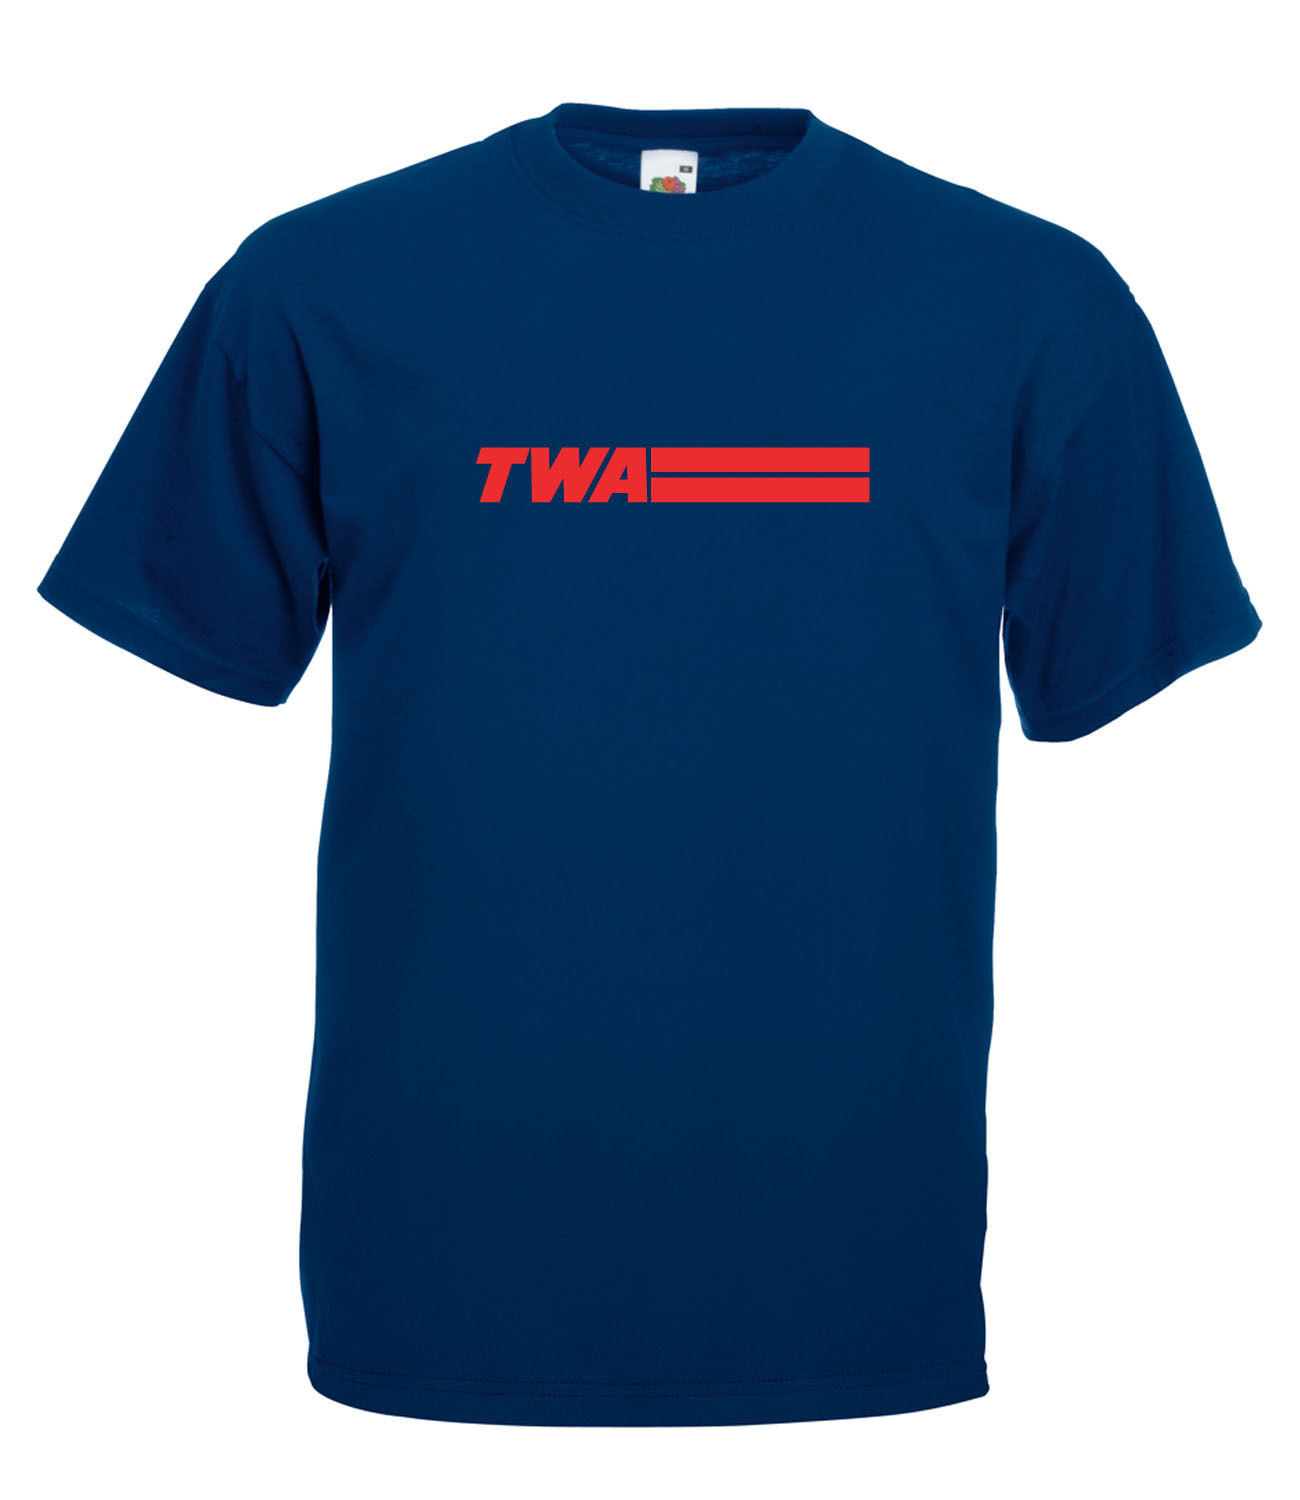 Twa Inspired Style Logo Graphic High Quality 100 Cotton